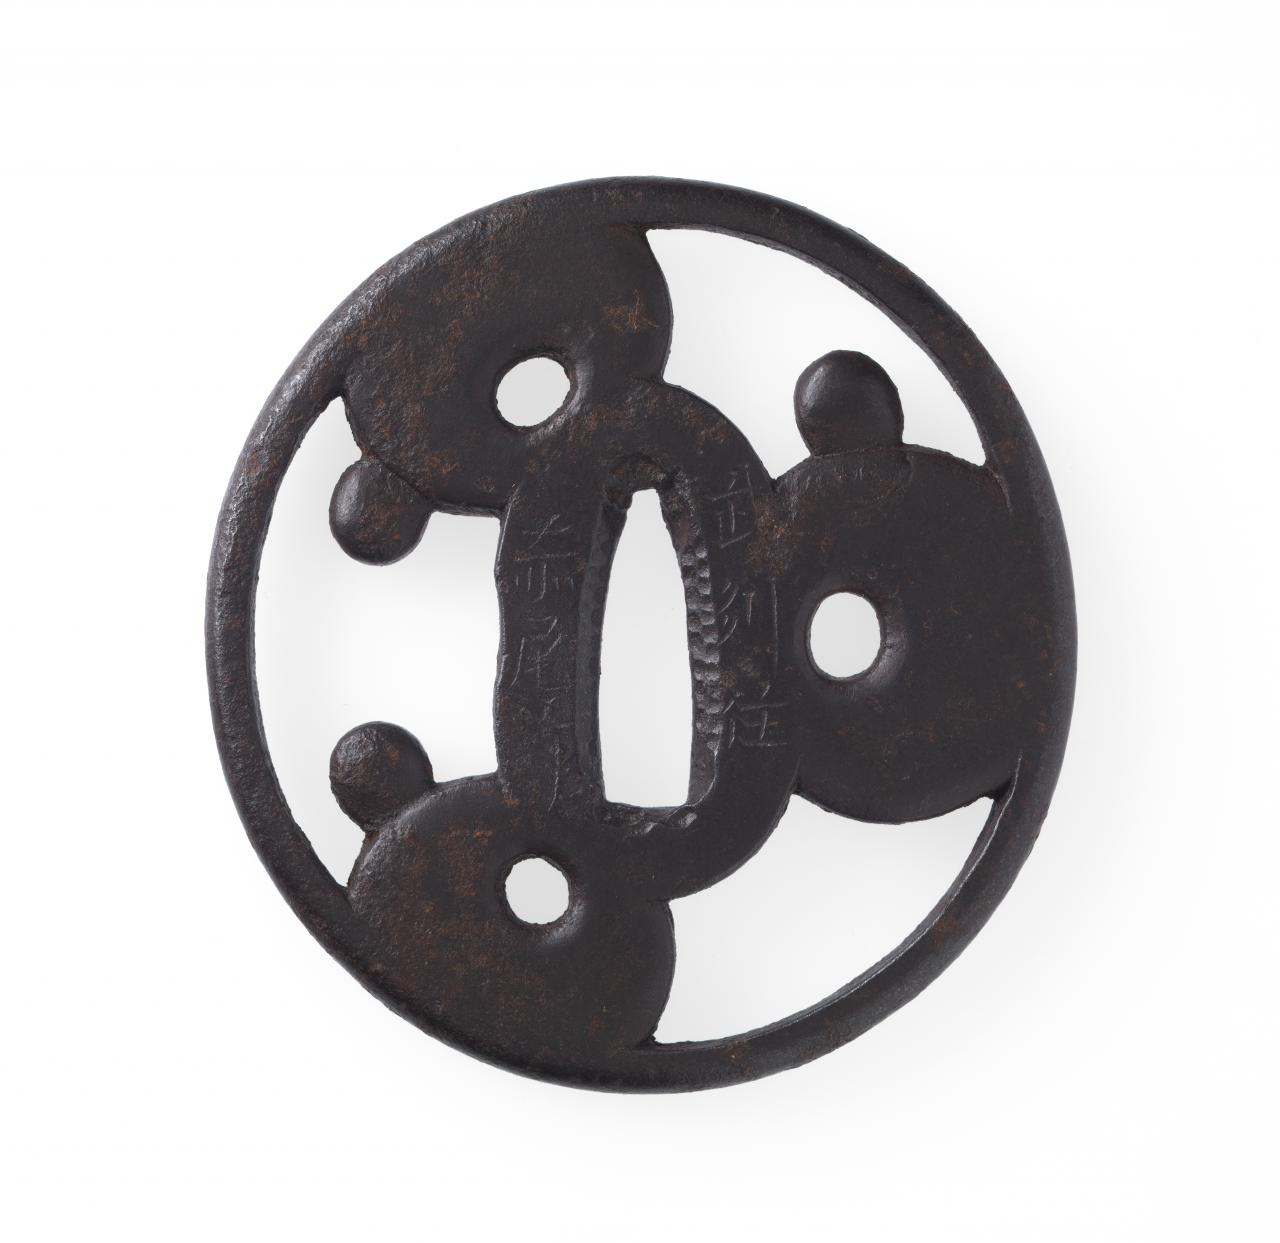 Sword guard with hanging toy monkey design